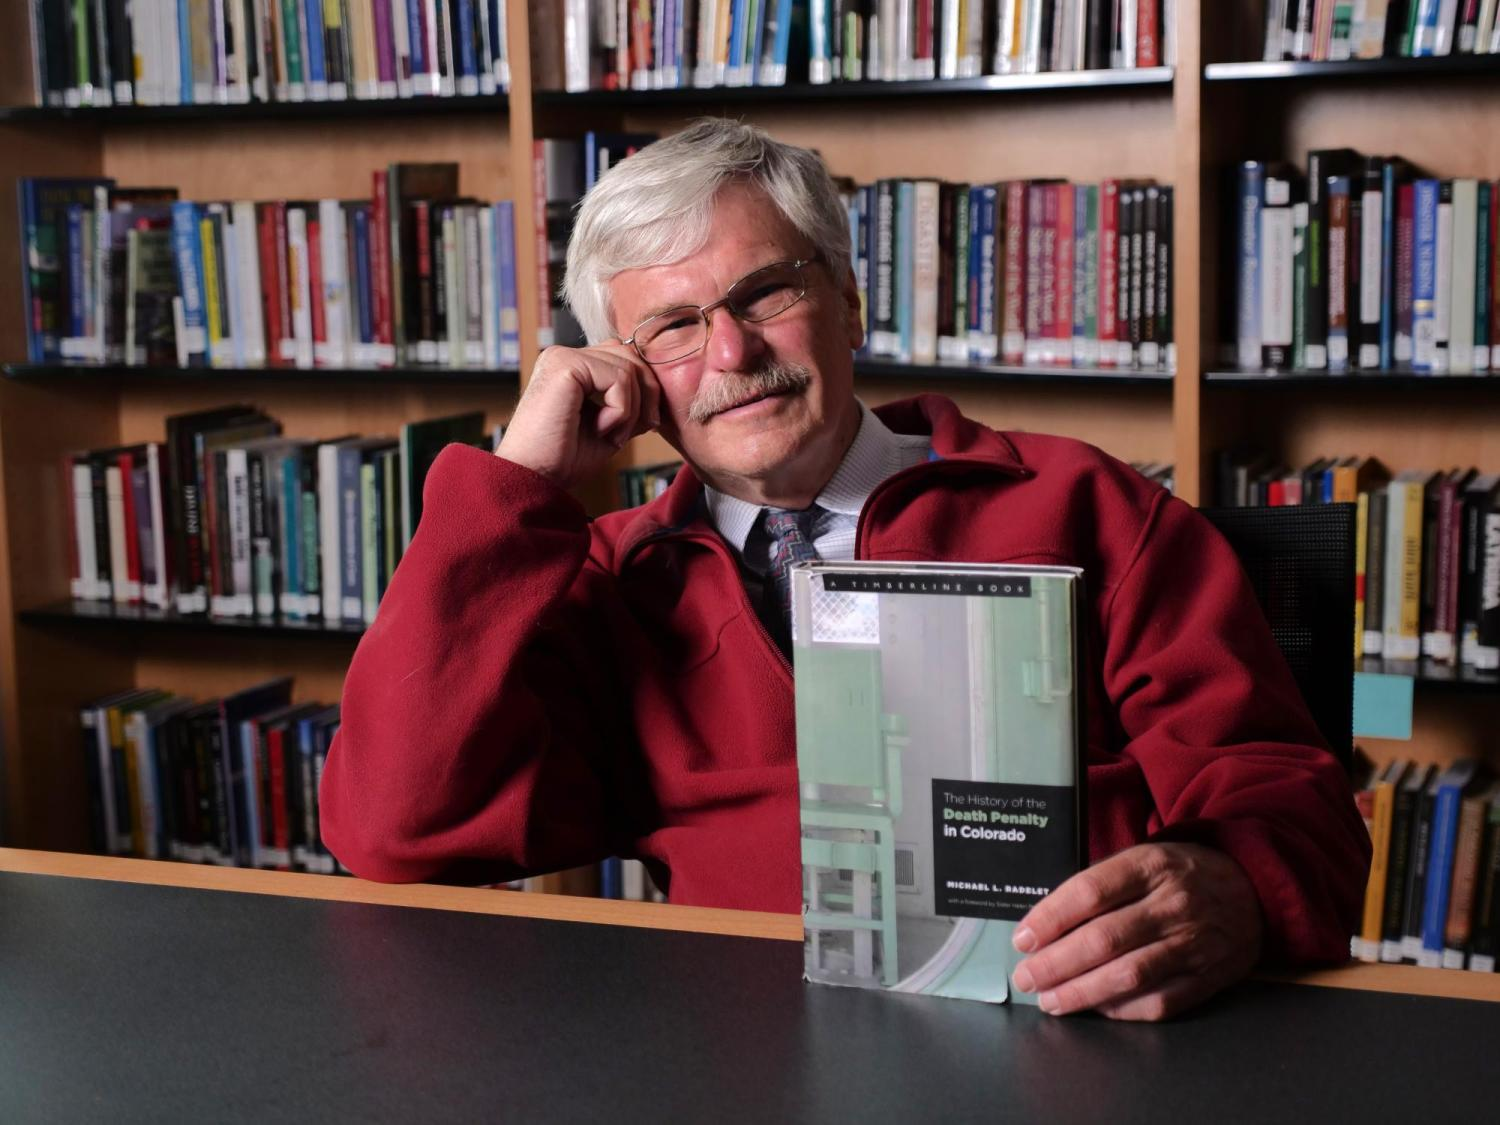 """Michael Radelet with book titled """"Death Penalty in Colorado"""""""